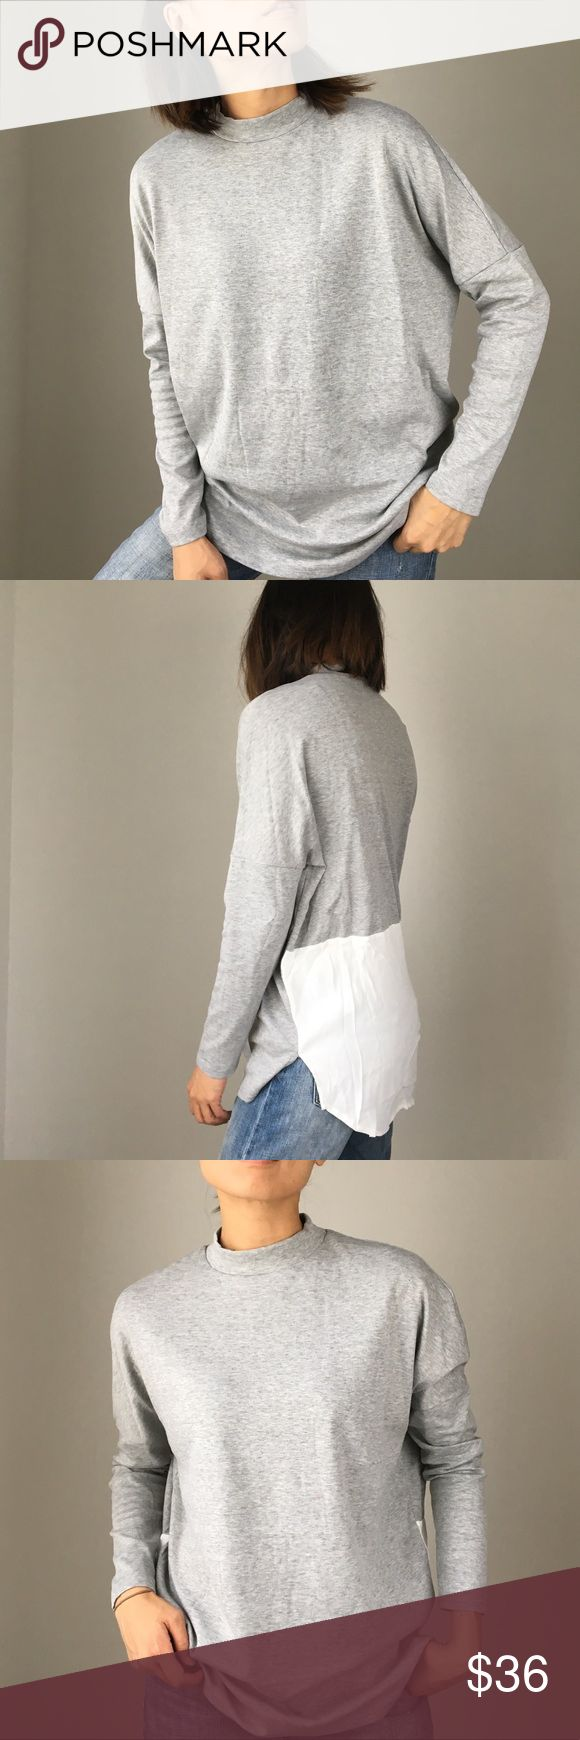 """Melanie chic casual dolman contrast top Quality cozy dolman contrast top. High grade polyblend cotton top. Cool casual oversized look. Contest block back. I'm wearing size S for cover shots. Size S:Bust ;50"""".length 27"""". Size M: bust 51"""", length 27@. Size L bust 52@, length 28"""". Best casual cozy top CHICBOMB Tops Tees - Long Sleeve"""